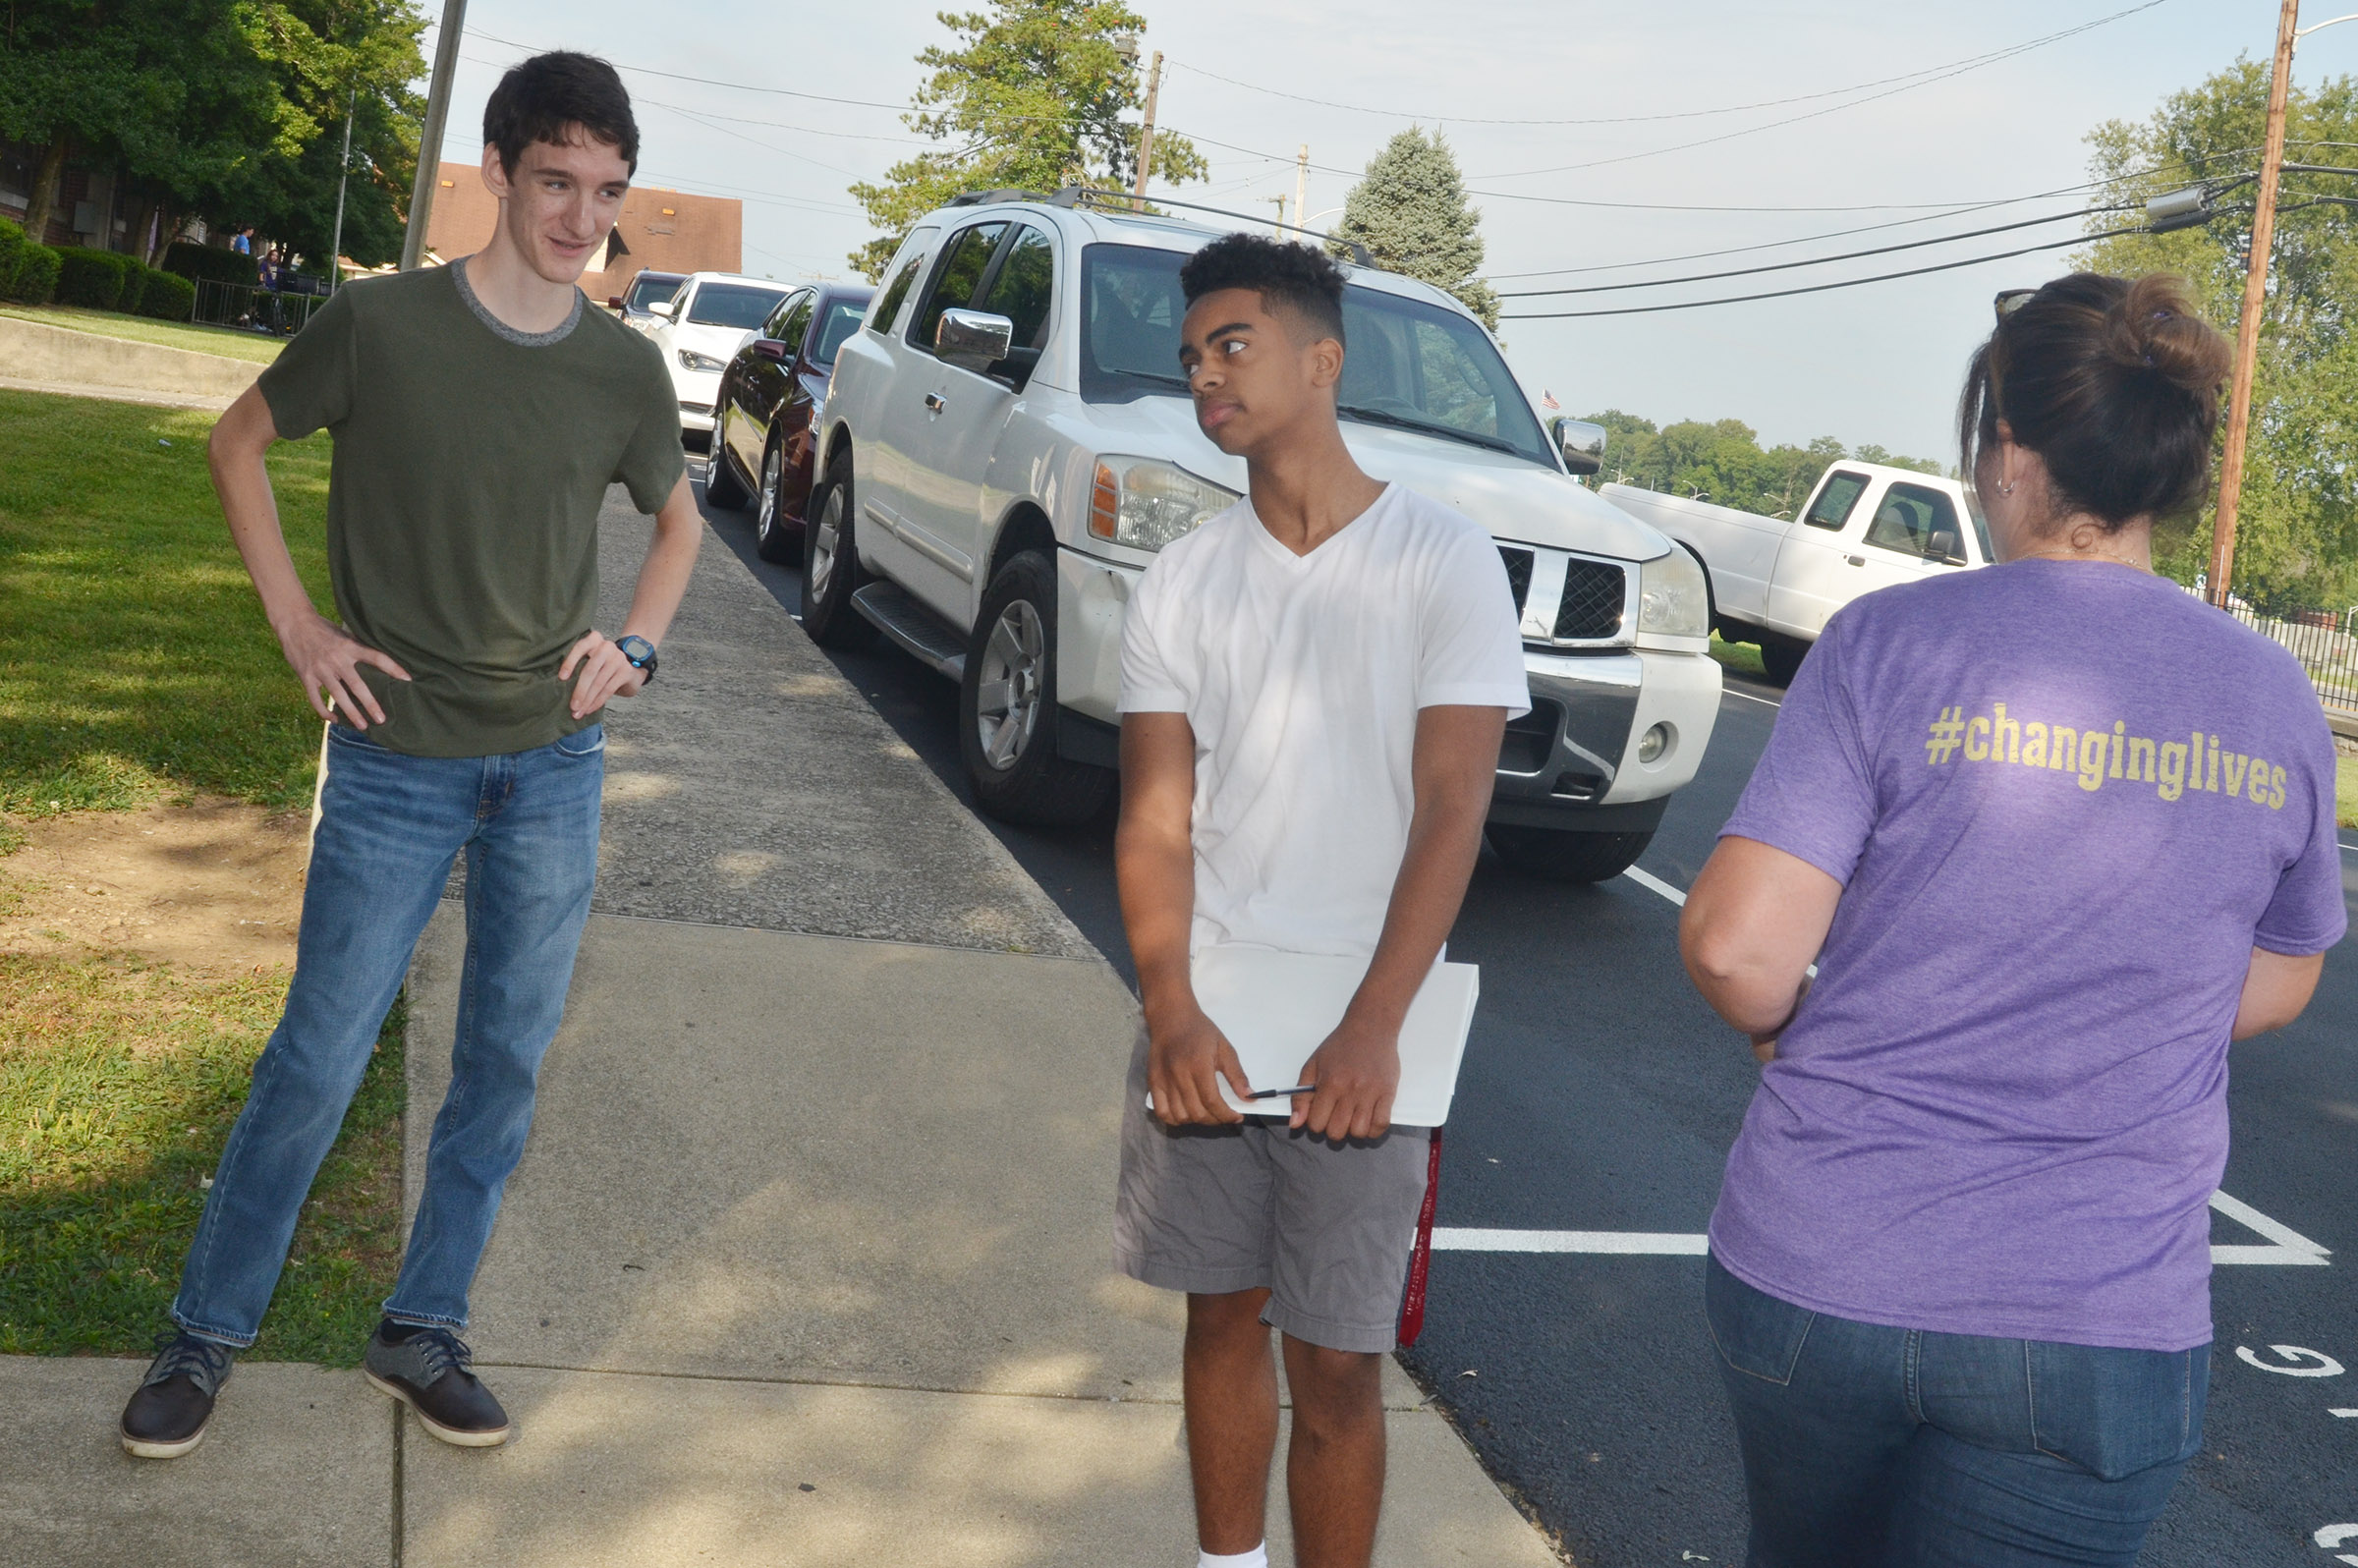 CHS juniors Ian McAninch, at left, and Davon Cecil work together to describe their surroundings as they study the concept of contextualization. Their teacher, Susan Dabney, is at right.